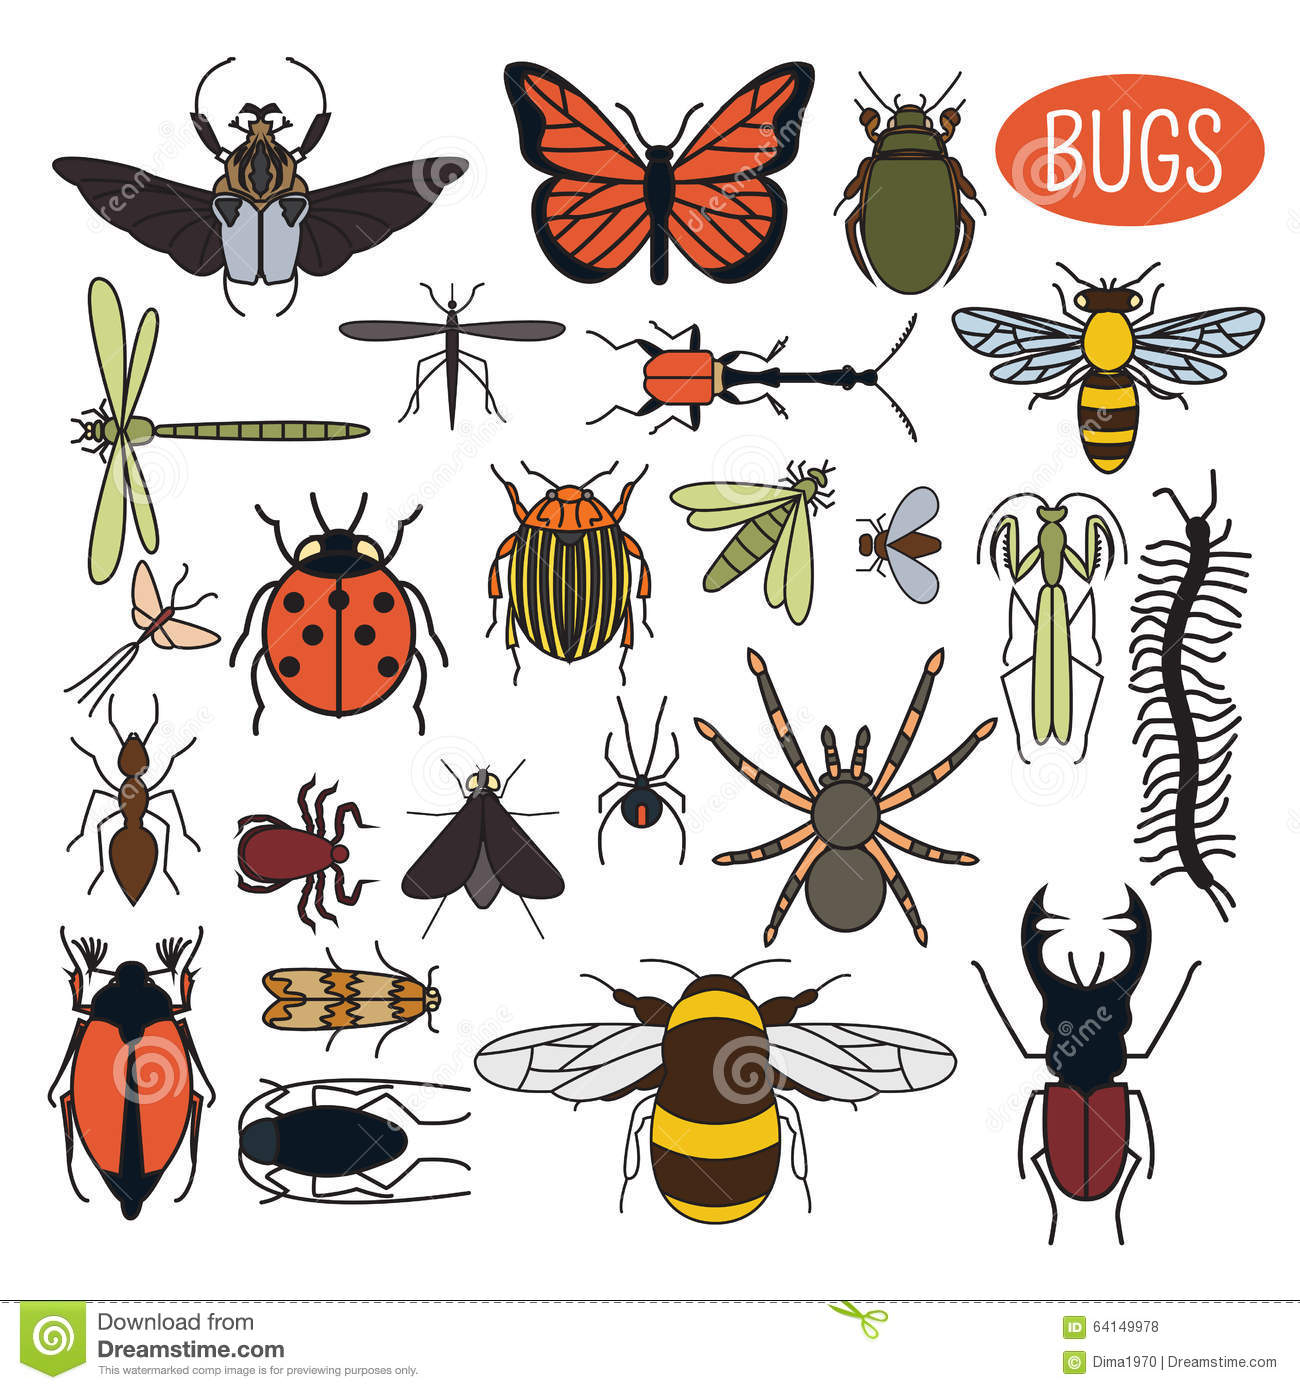 Insects icon flat style. 24 pieces in set. Colour version